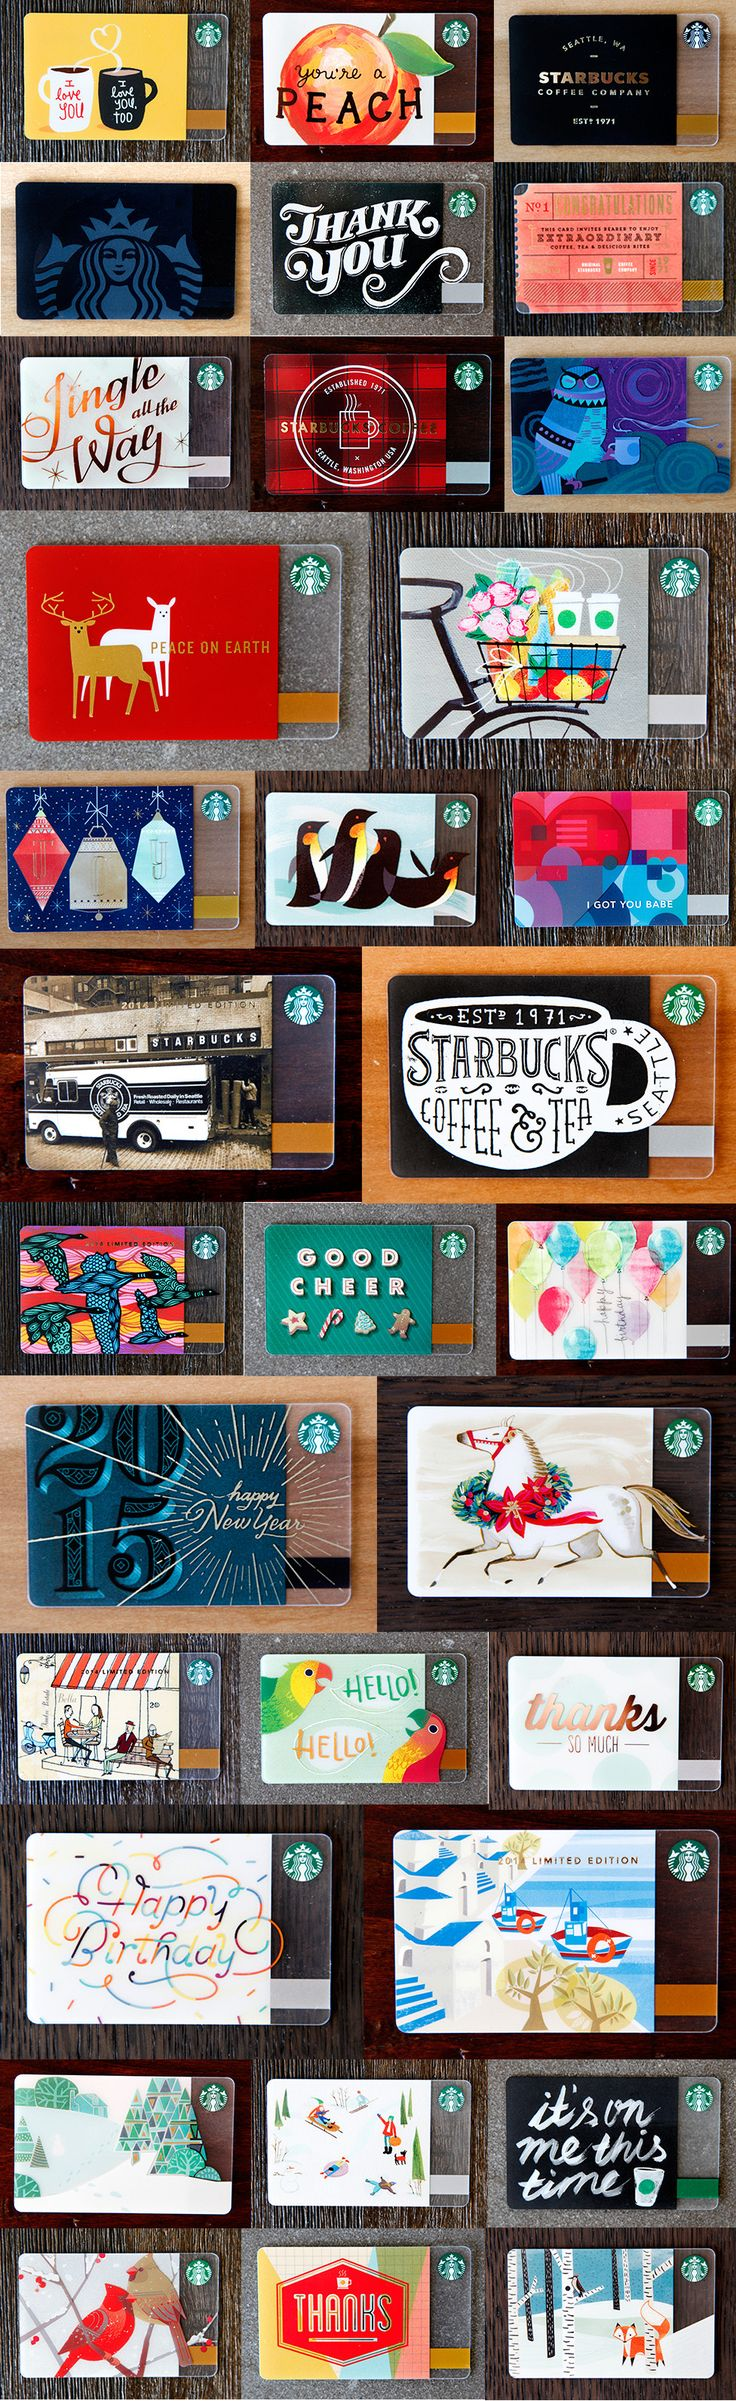 A glimpse at the Starbucks 2014 Holiday Card Collection. #StarbucksCard